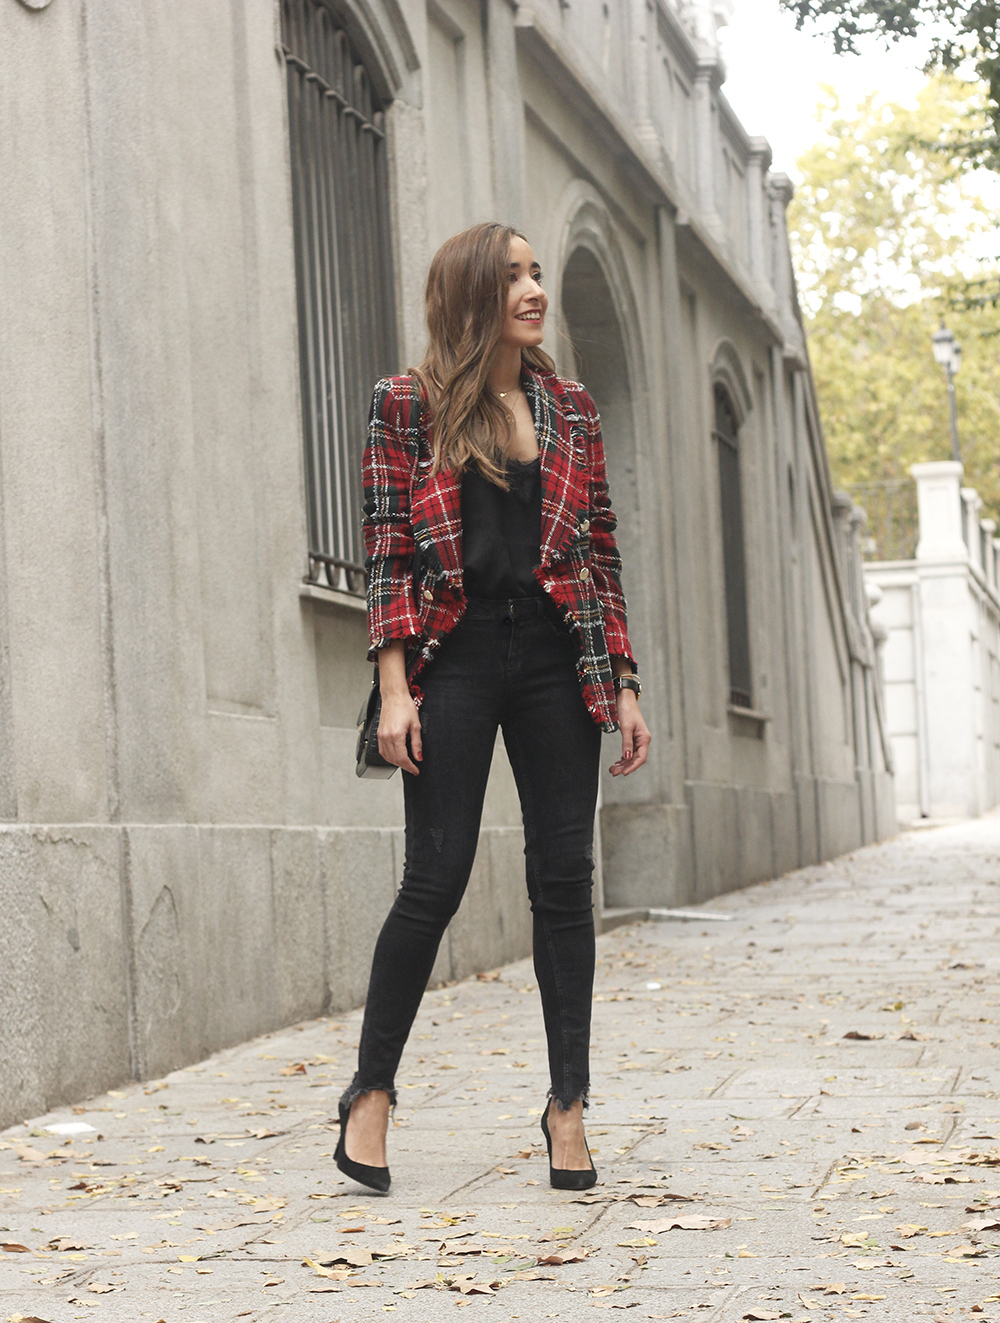 Tartan blazer black outfit heels givenchy bag street style fall outfit 20183838